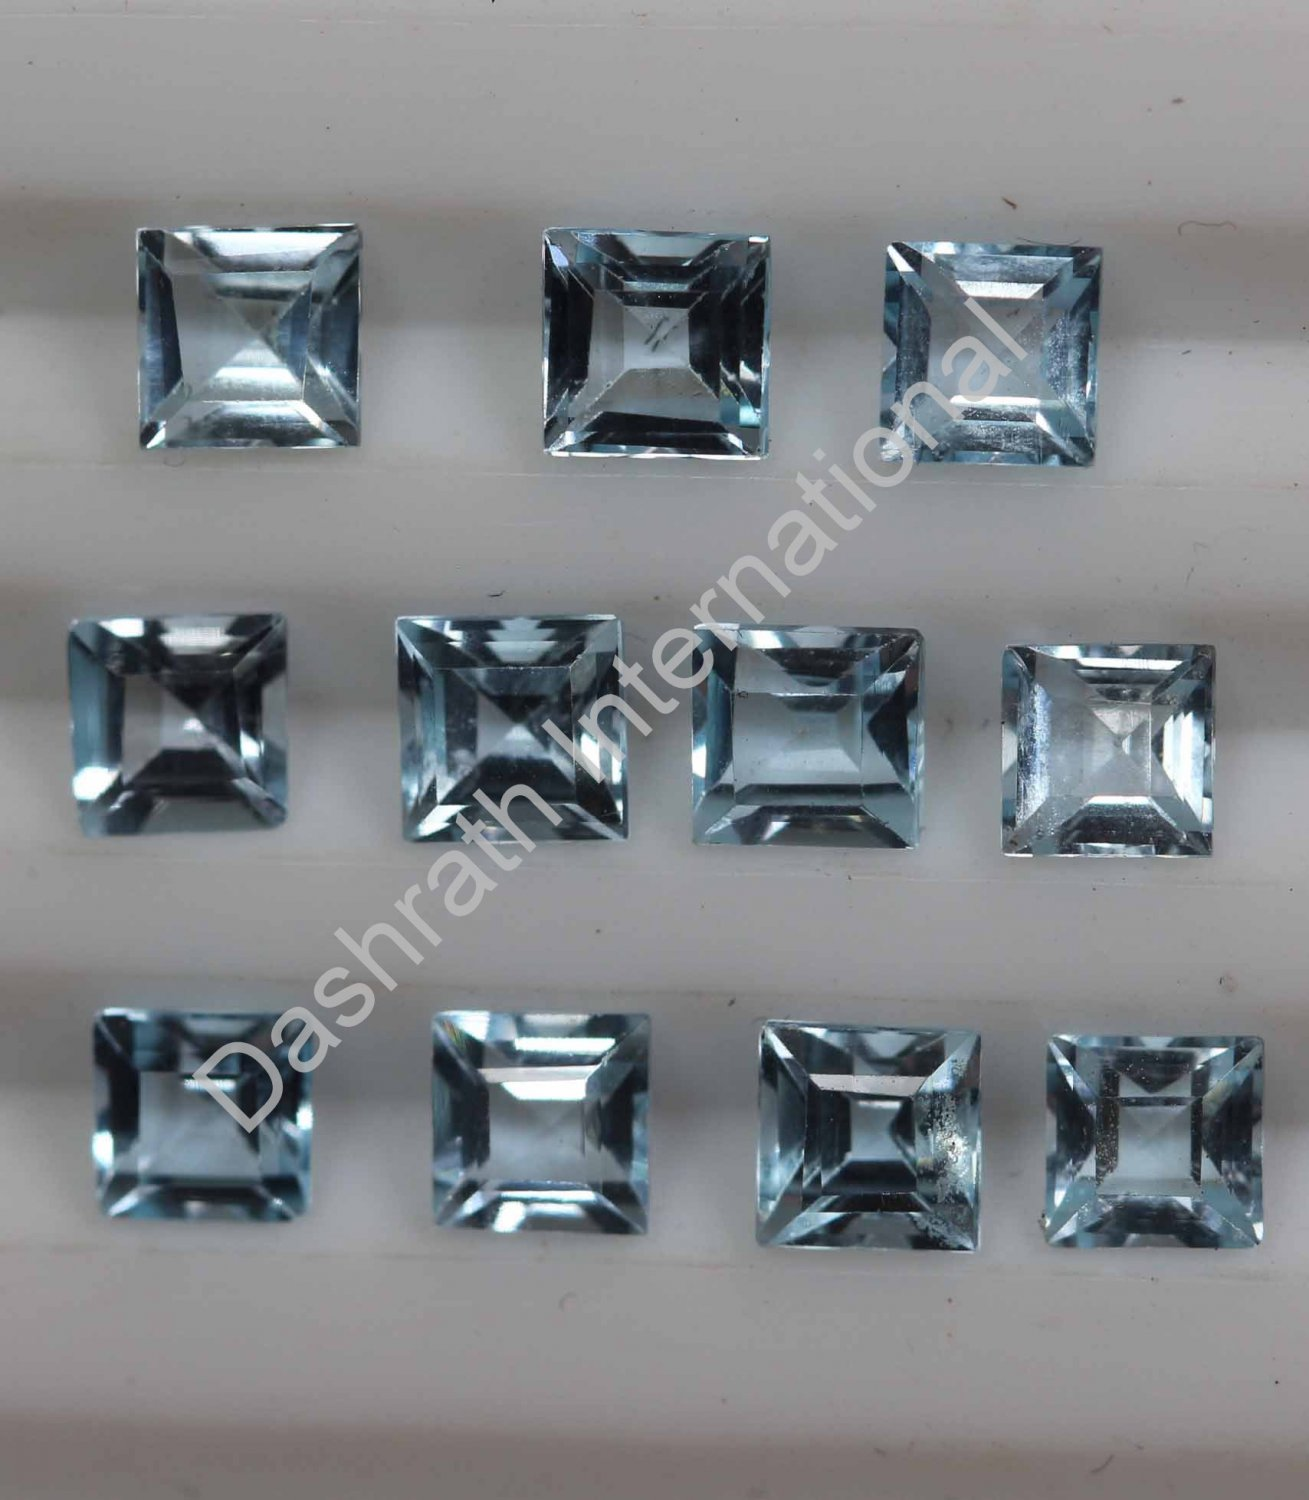 7mm  Natural Sky Blue Topaz Faceted Cut Square 25 Pieces Lot Top Quality Loose Gemstone